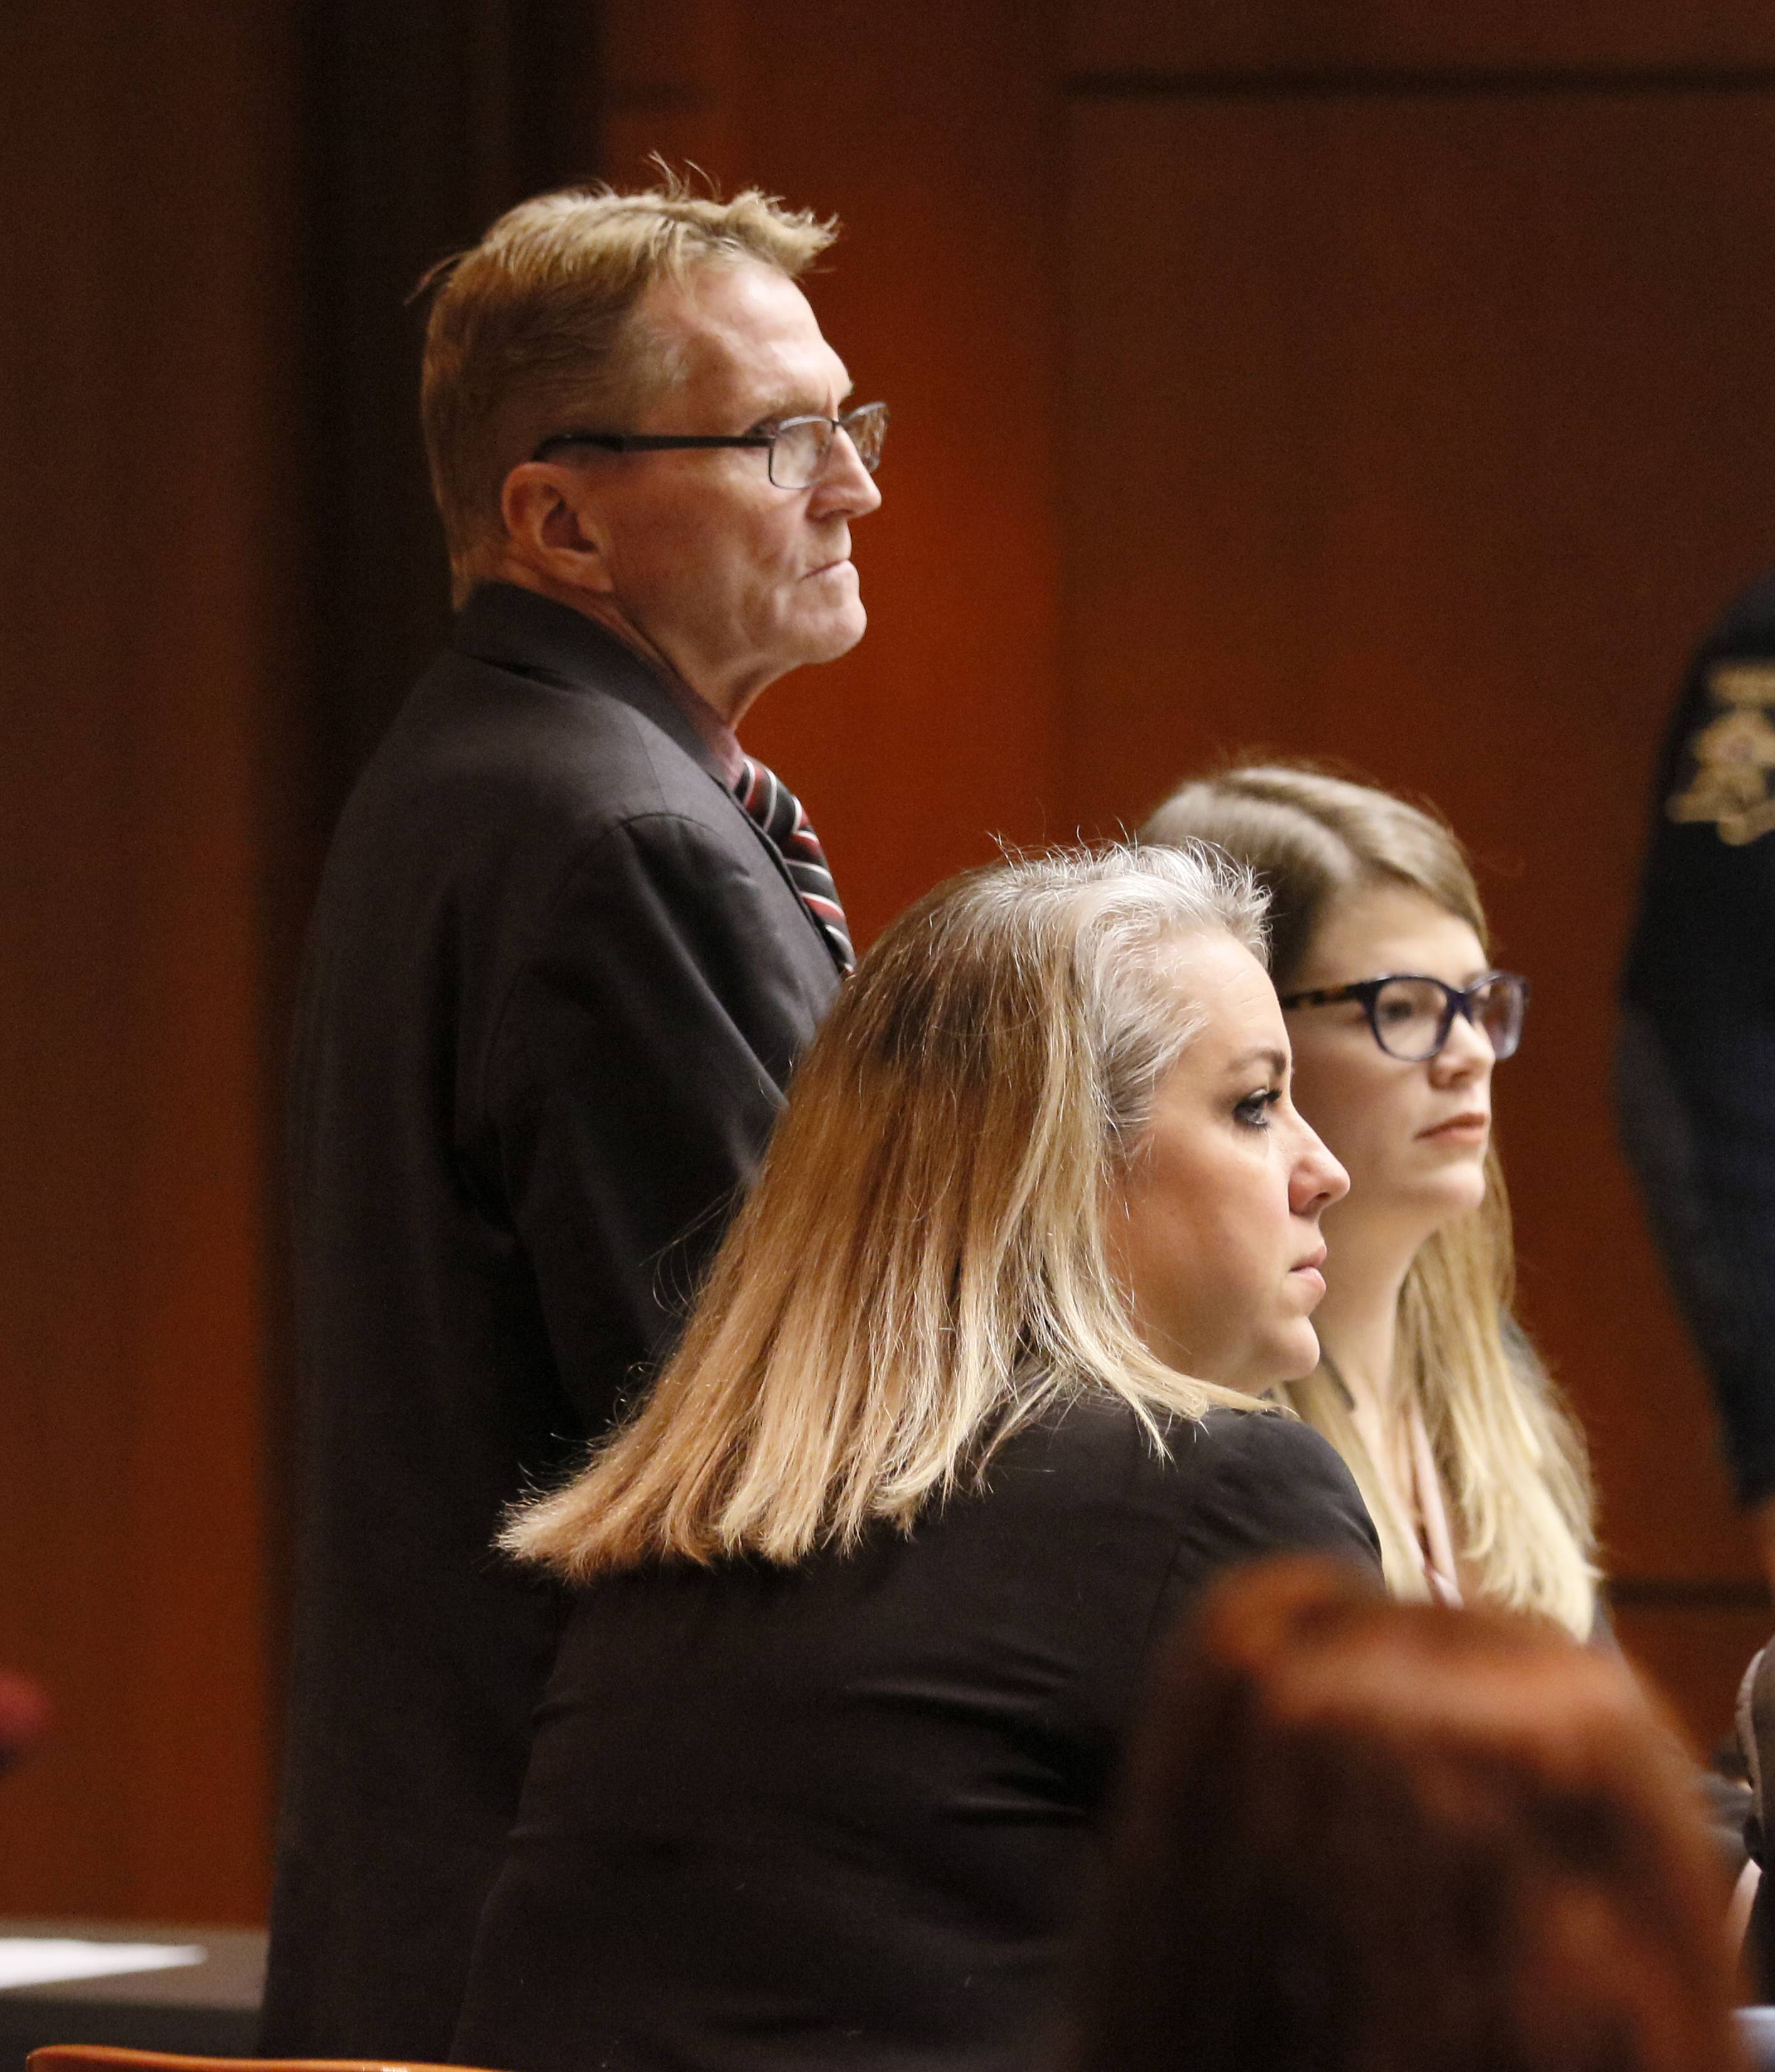 William Amor and his attorneys, Lauren Kaeseberg and Lauren Myerscough-Mueller, listen to Assistant State's Attorney Thomas Minser's opening statement Wednesday at the DuPage County Courthouse. Amor is on trial for first-degree murder and arson in the 1995 death of his mother-in-law in Naperville.